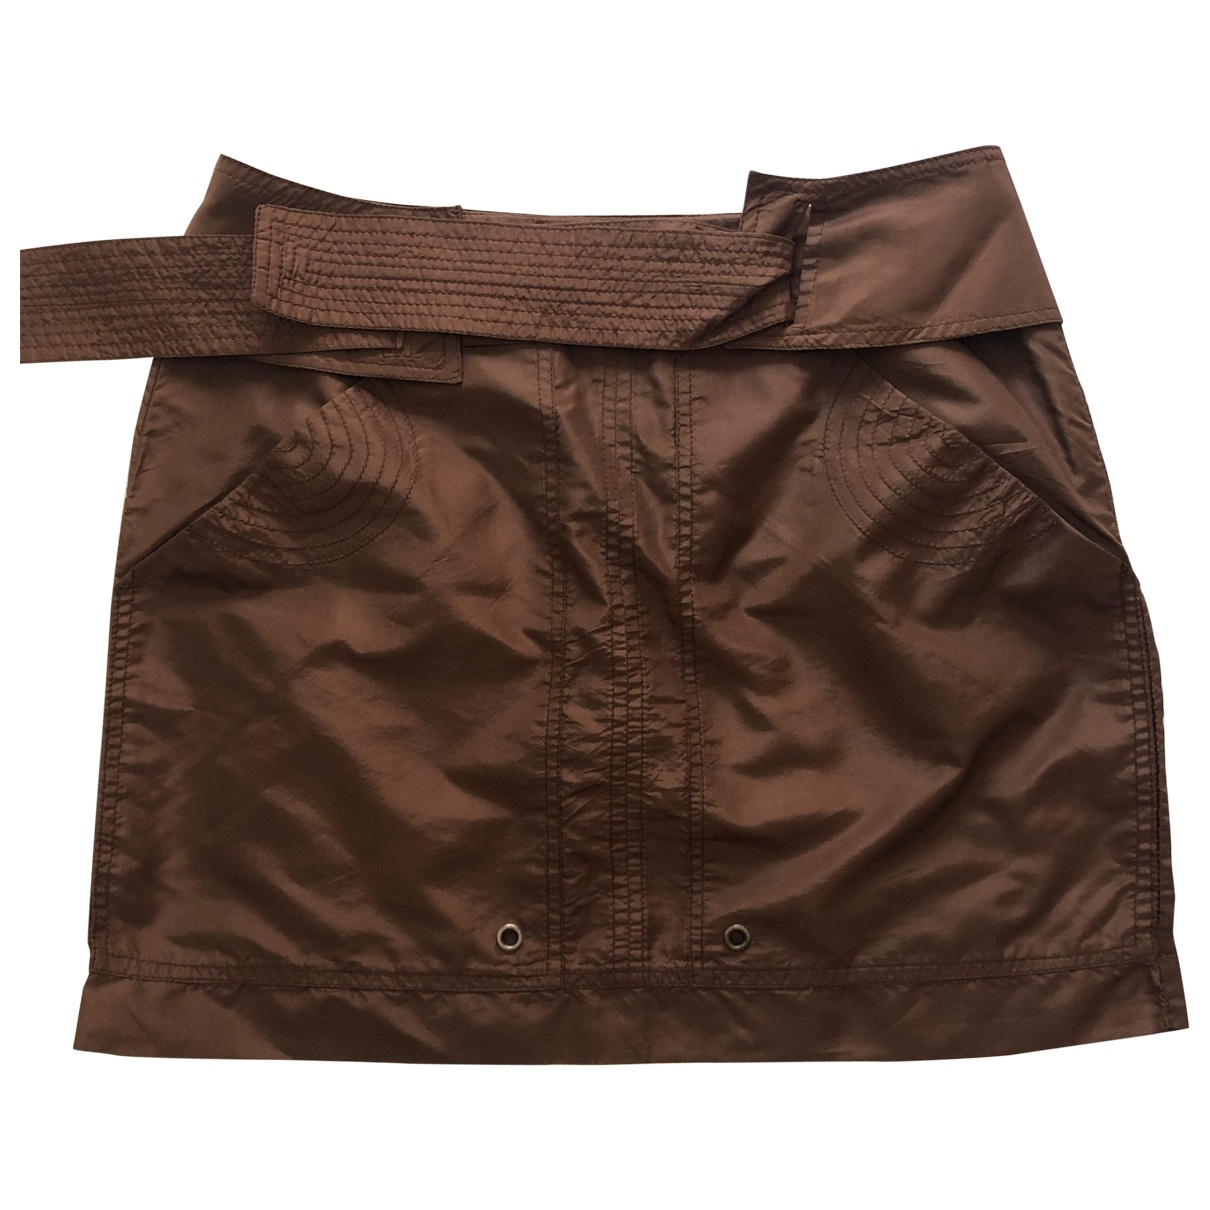 Gucci \N Brown skirt for Women 38 IT